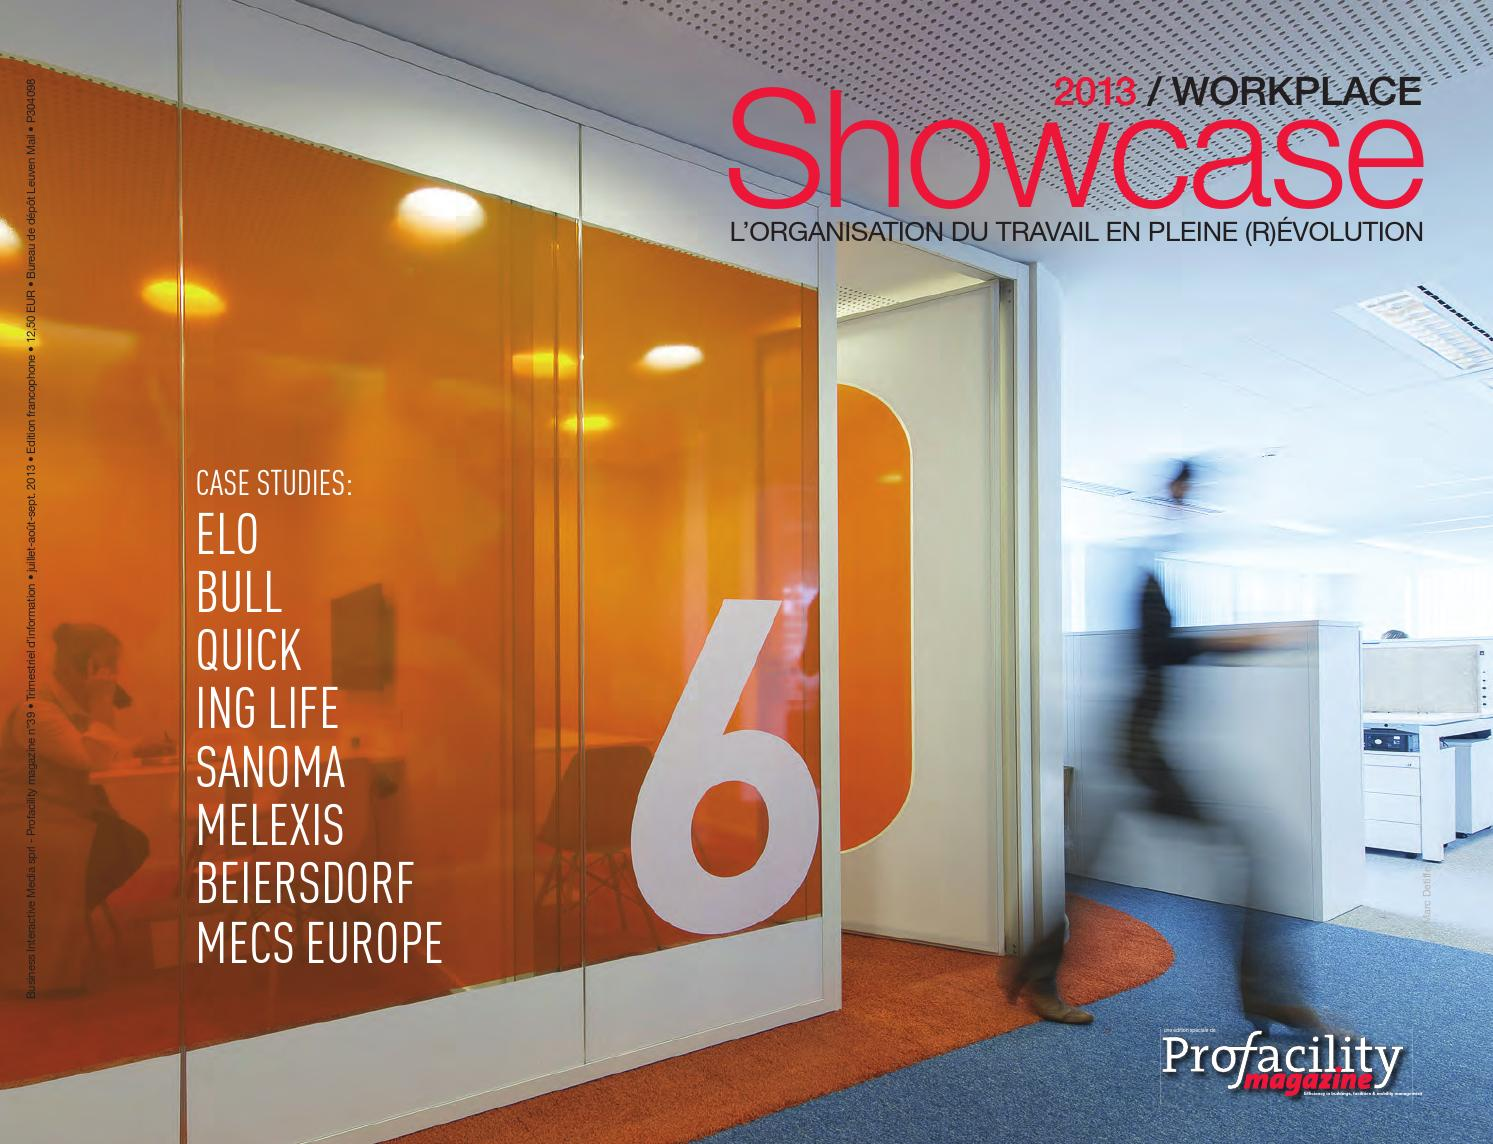 Workplace showcase 2013 edition française by business interactive